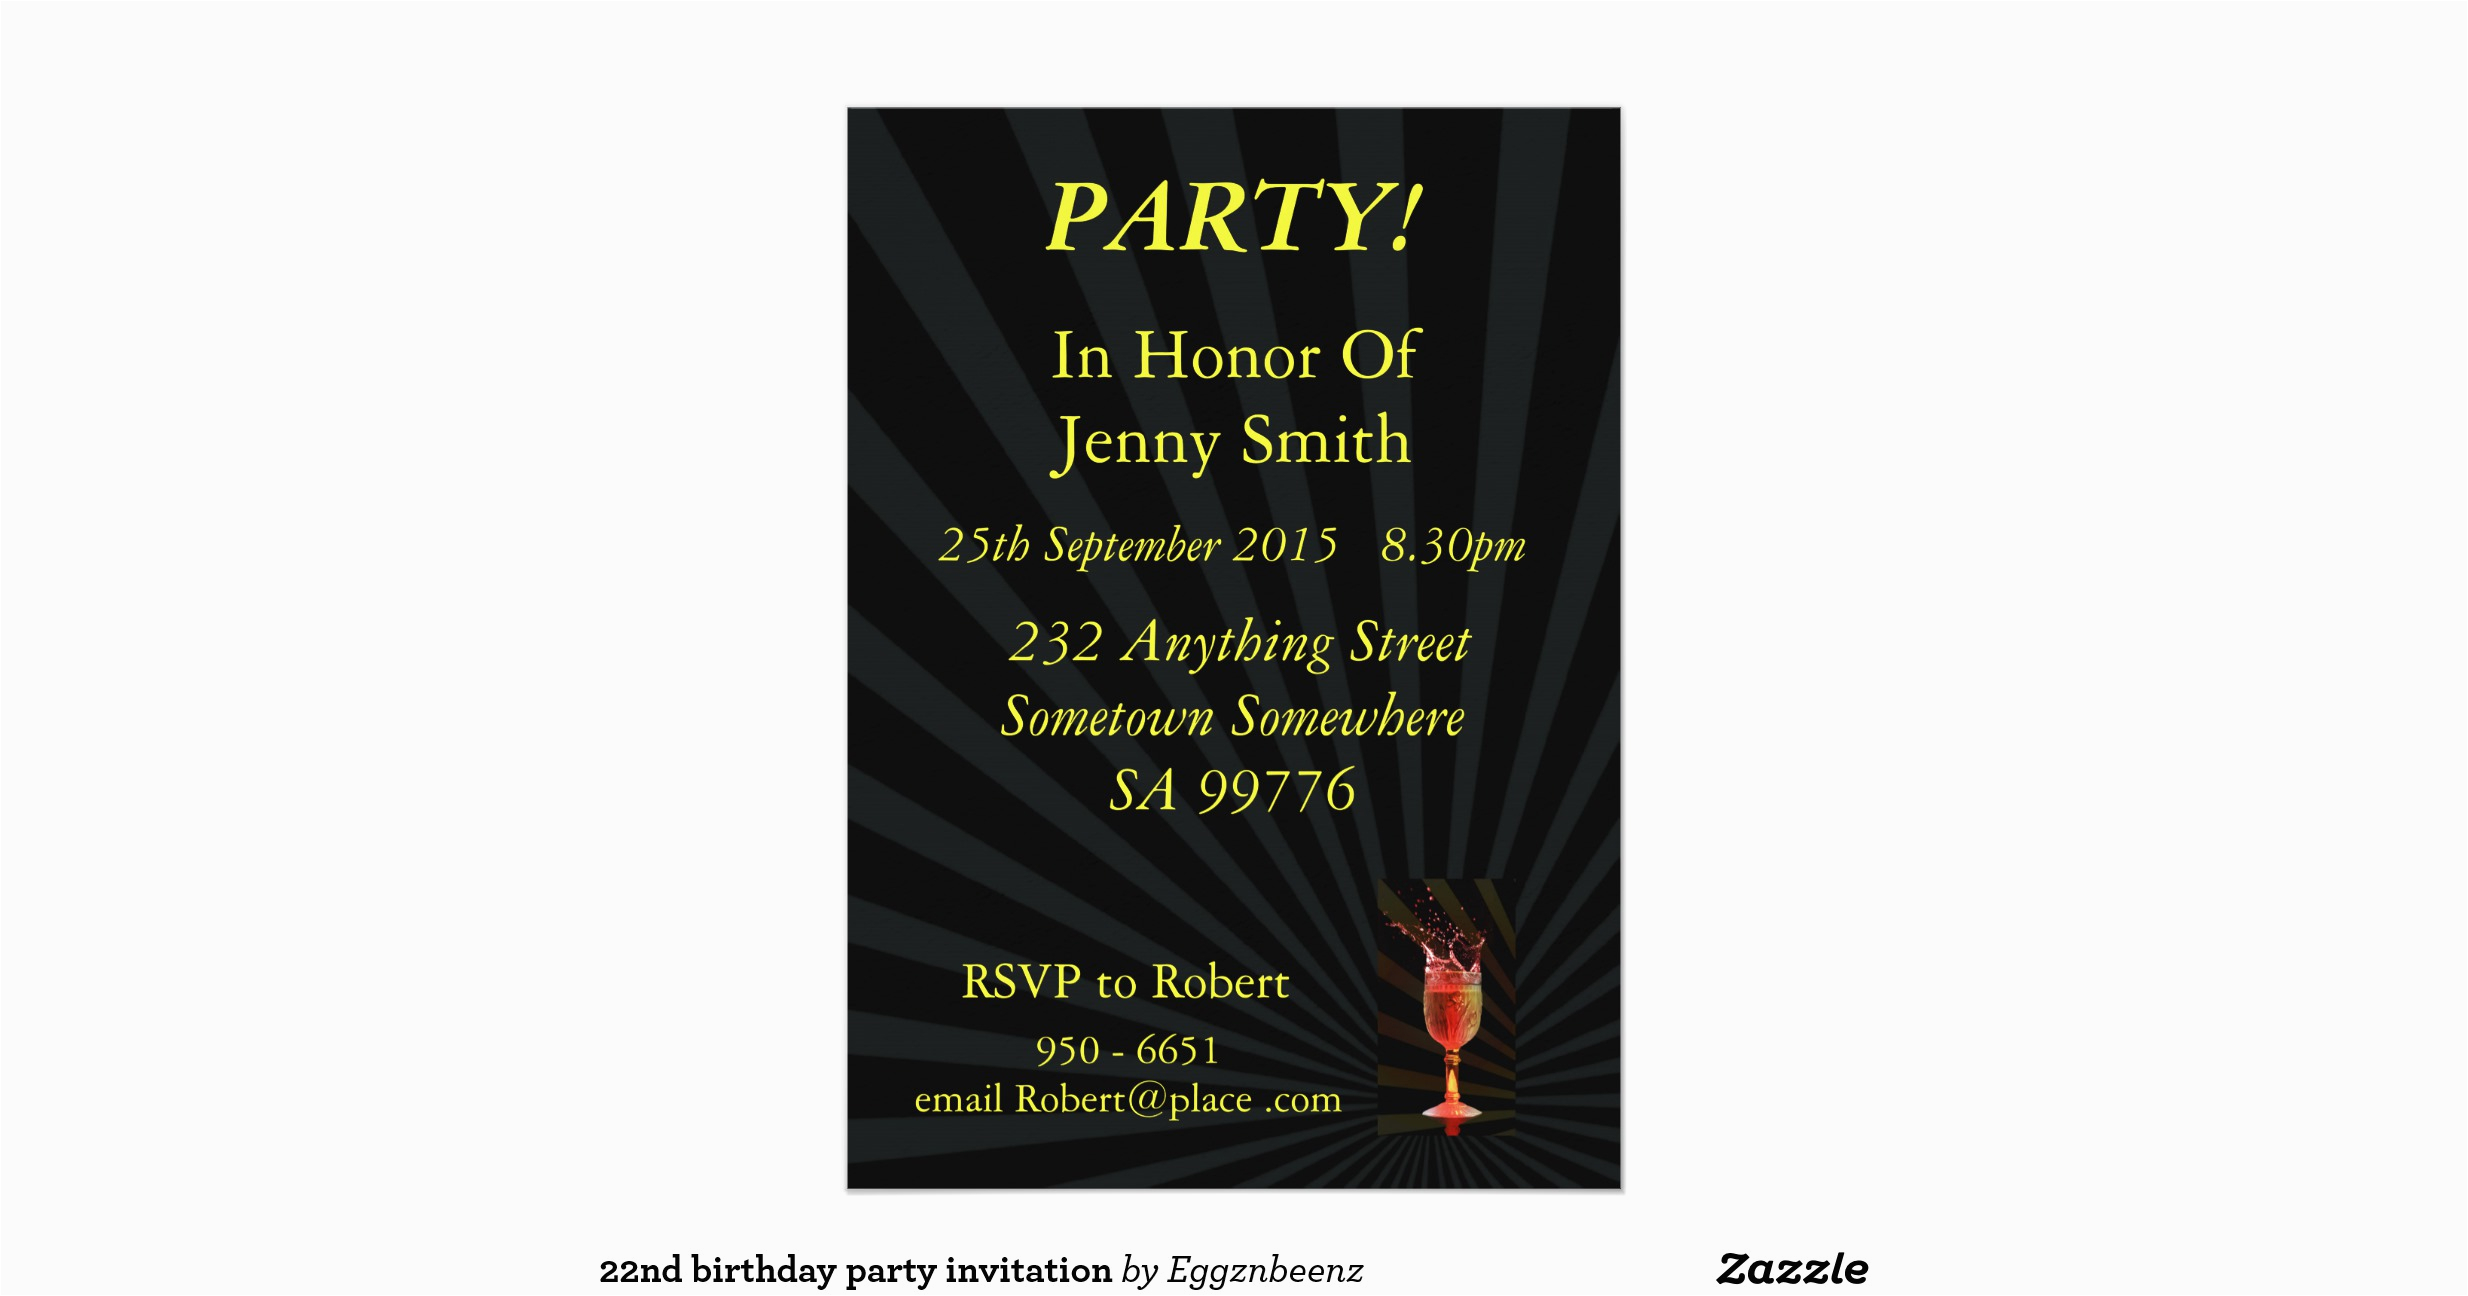 22nd Birthday Party Invitations 22nd Birthday Party Invitation Zazzle